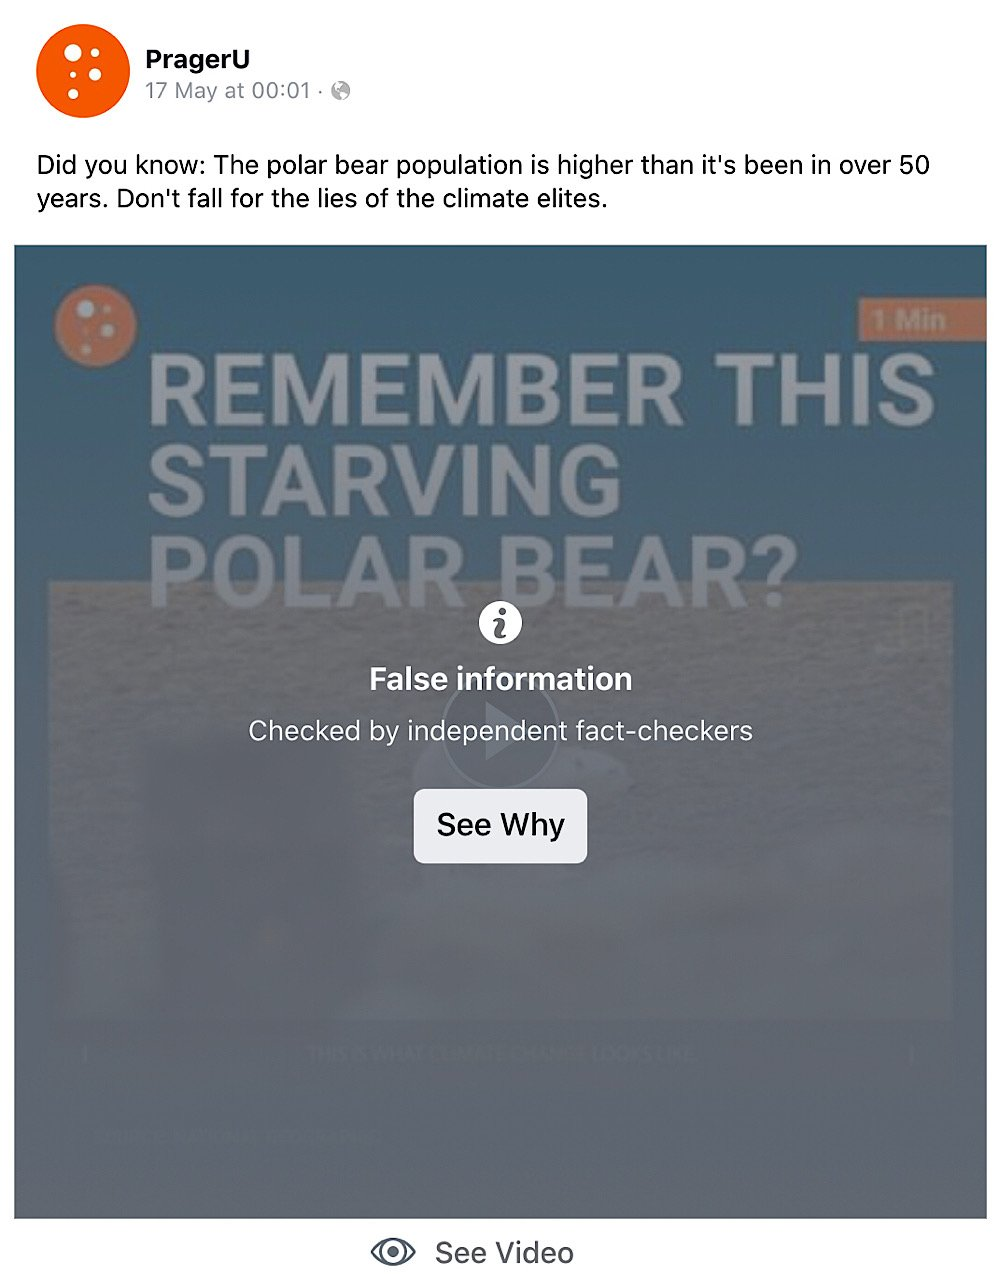 PragerU's polar bear video was subject to a disputed fact check (Facebook - PragerU)